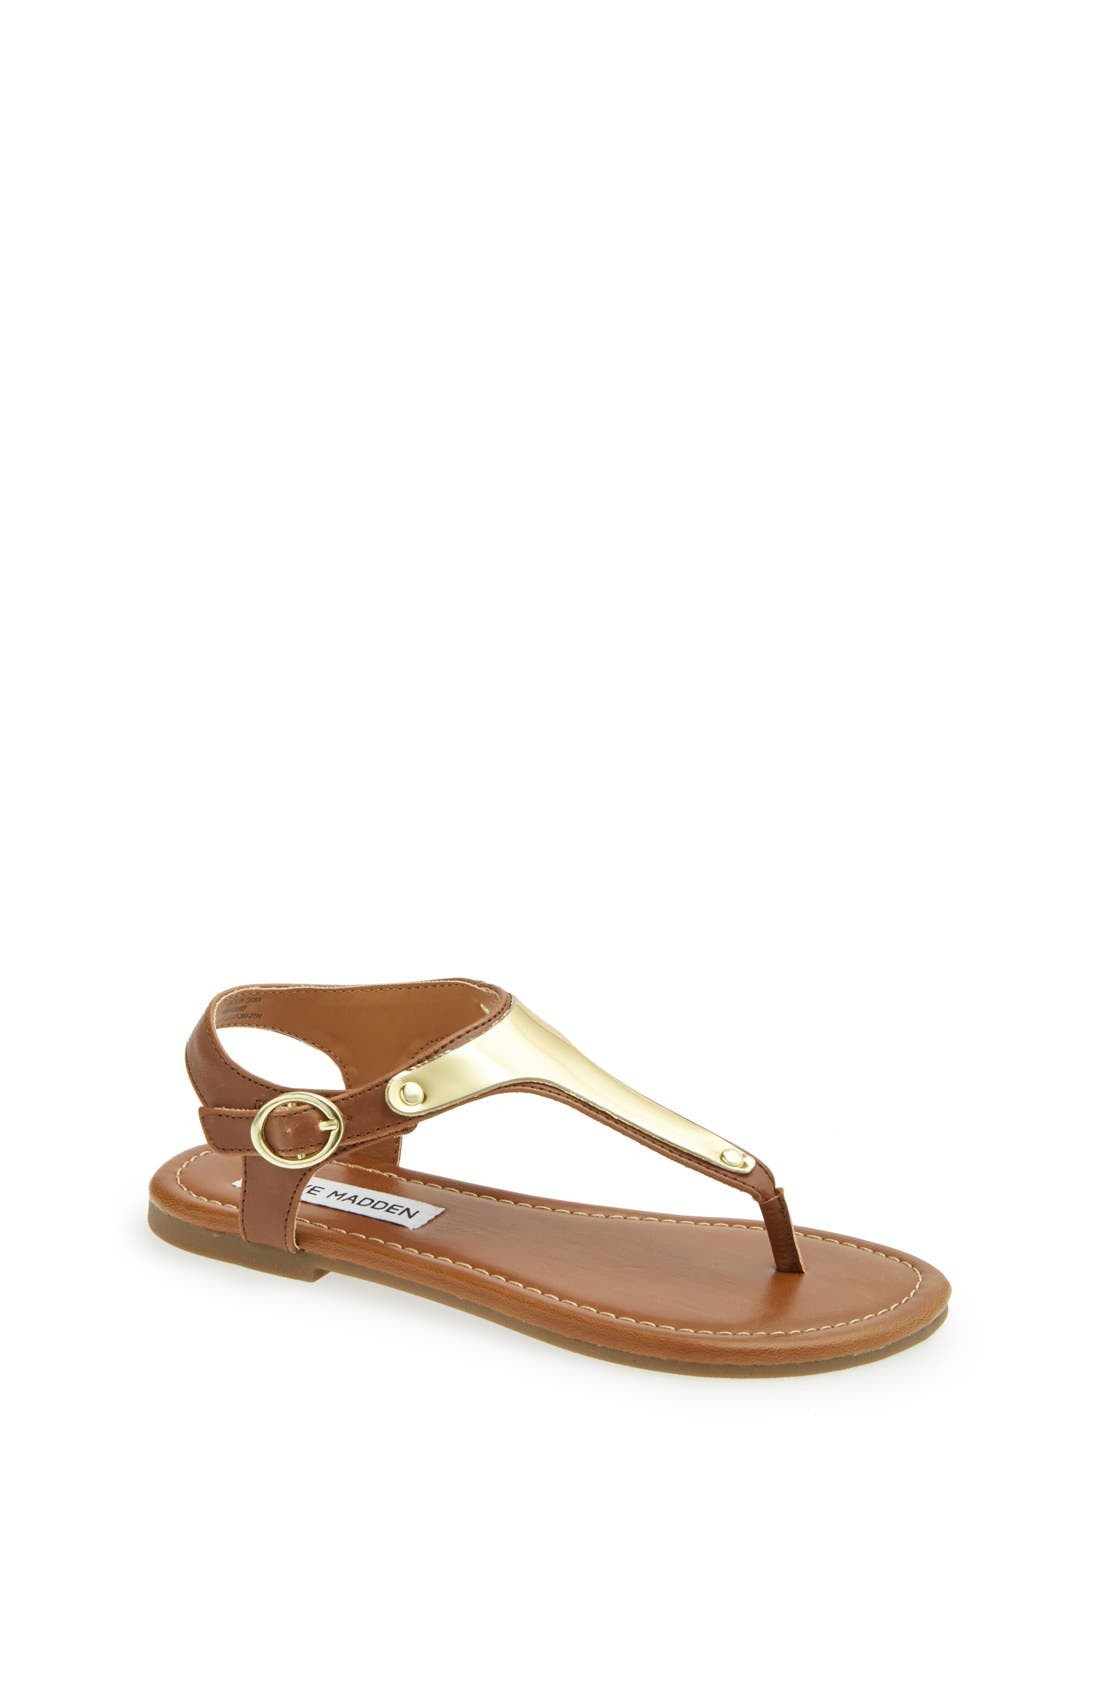 Alternate Image 1 Selected - Steve Madden 'Pseudo' Sandal (Little Kid & Big Kid)